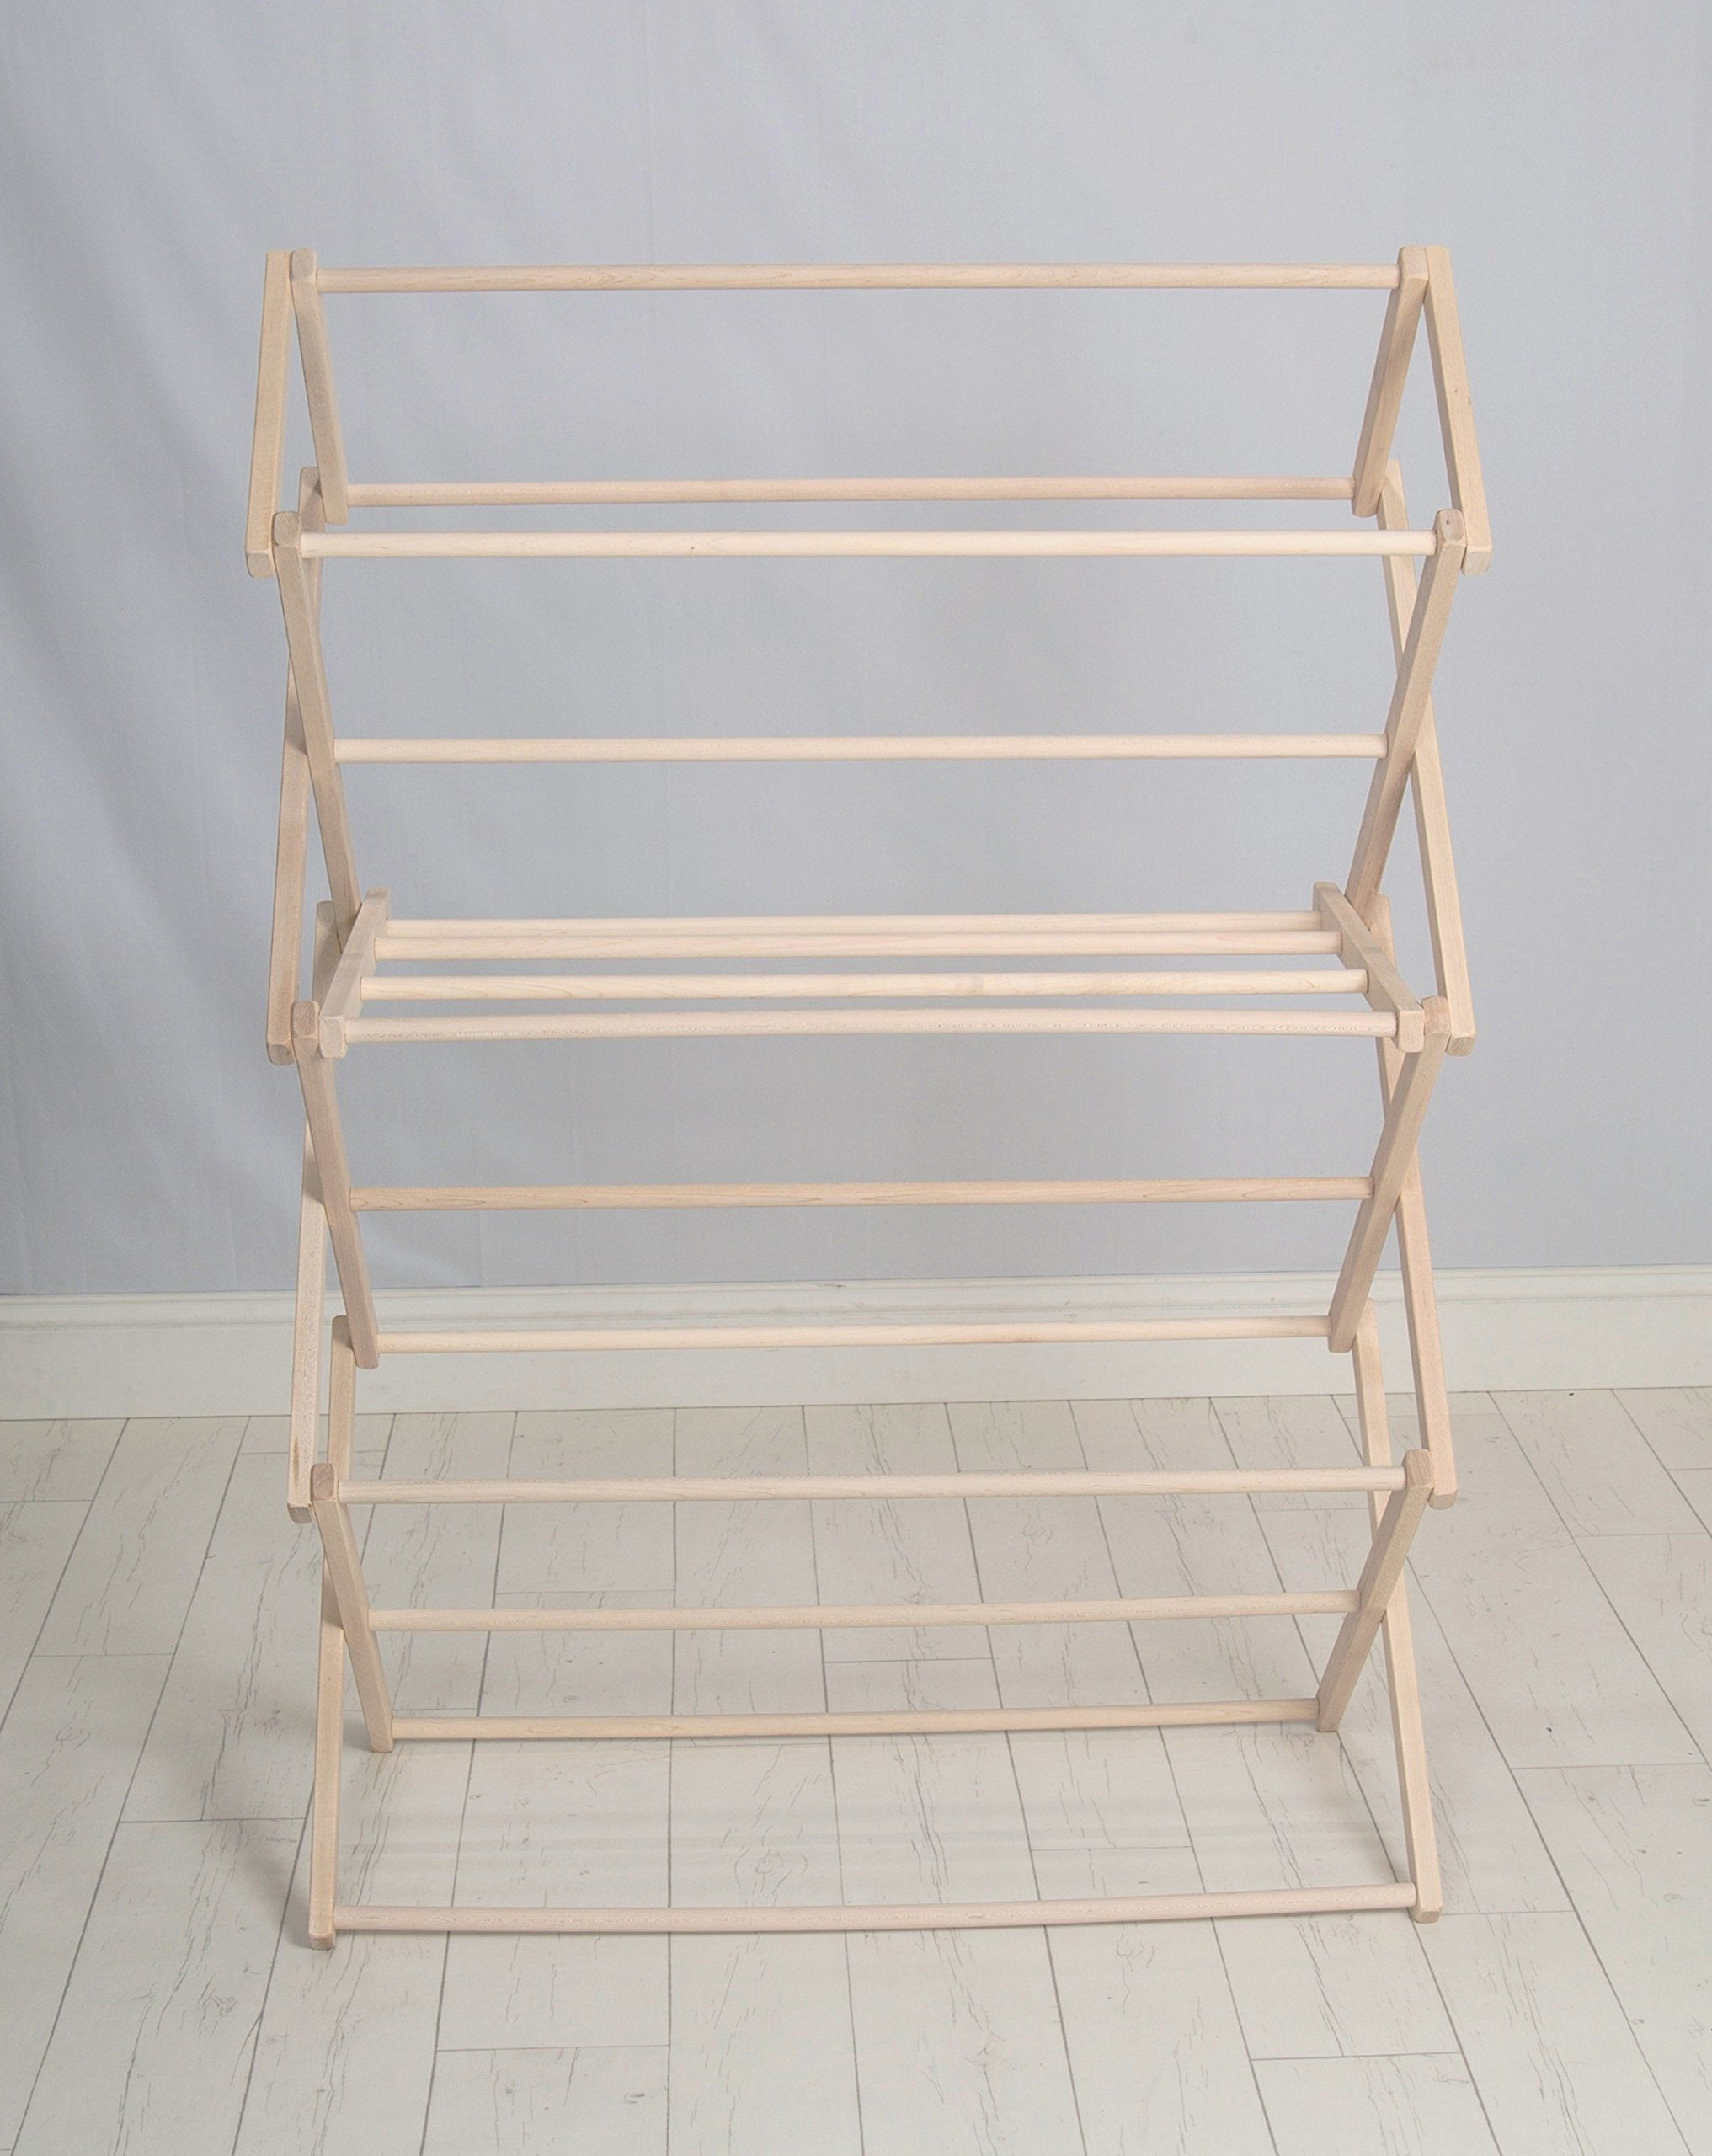 Pennsylvania Woodworks Clothes Drying Rack (Made in the USA) Heavy Duty 100% Hardwood (Large) by Pennsylvania Woodworks (Image #2)